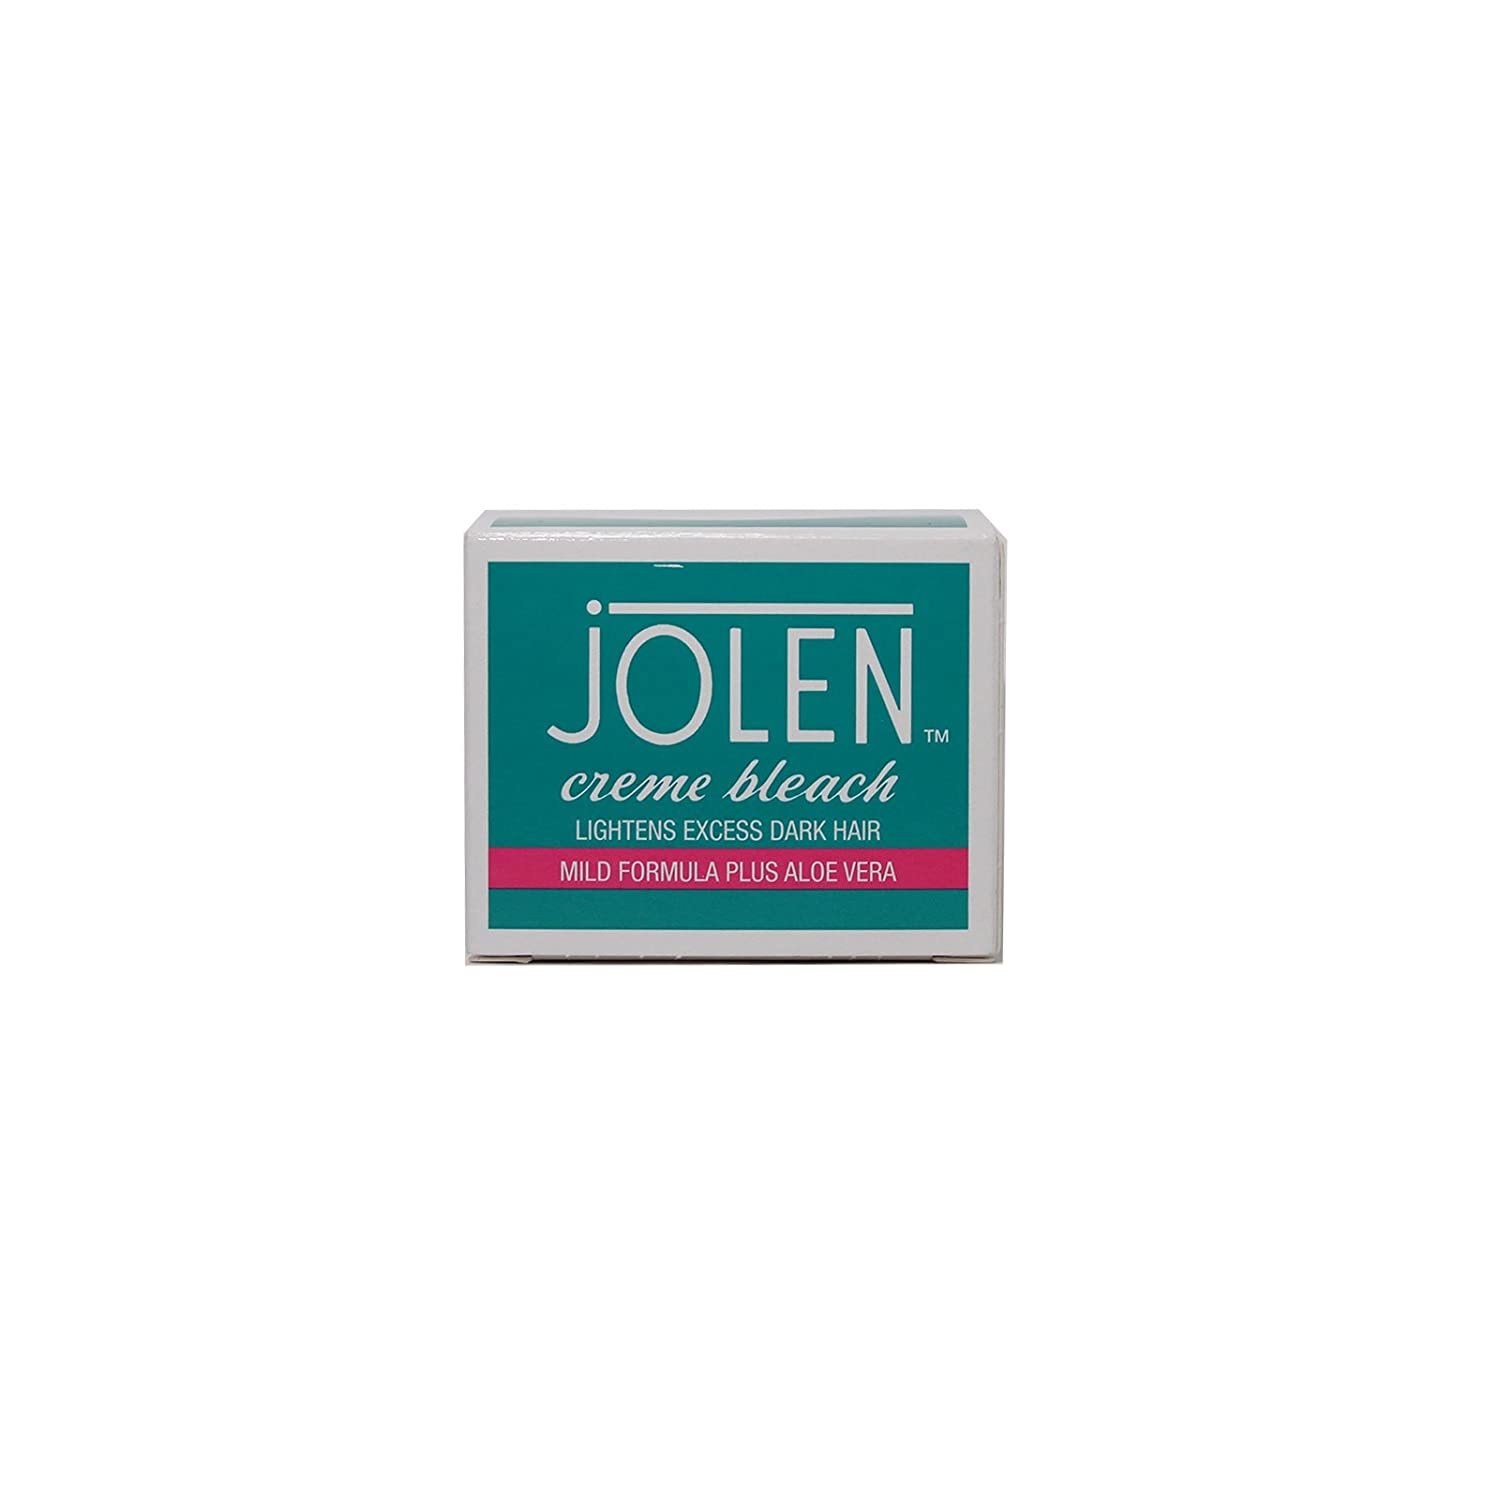 JOLEN CREME BLEACH MILD FORMULA PLUS ALOE VERA 30ML & ACCELERATOR 7G 100% GENUINE GUARANTEED